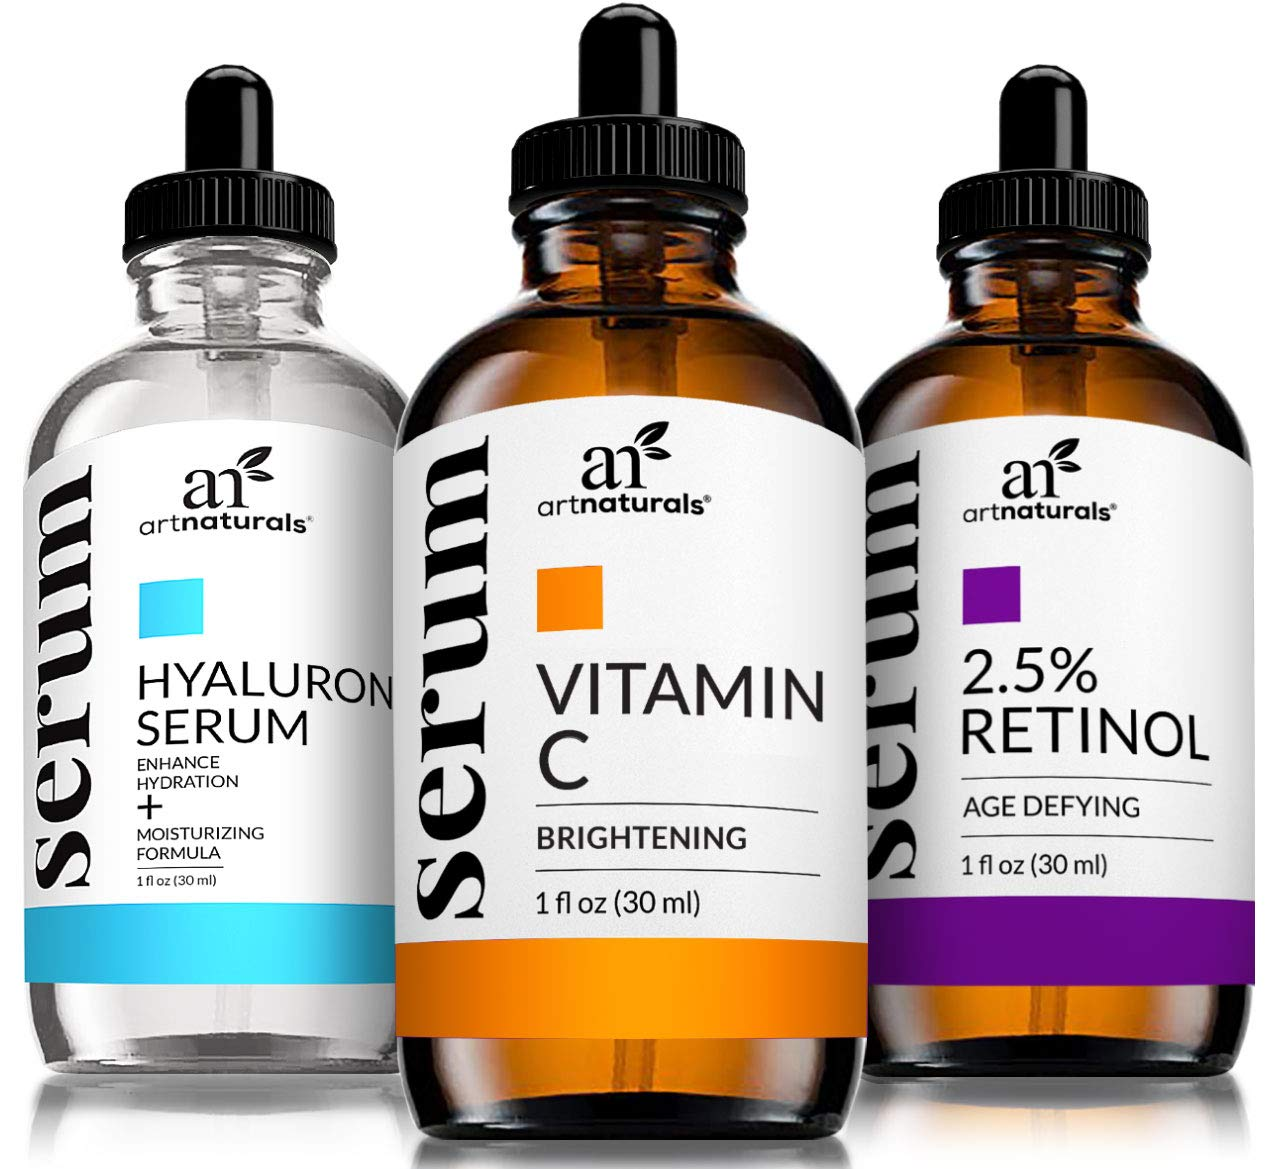 ArtNaturals Anti-Aging-Set with Vitamin-C Retinol and Hyaluronic-Acid - (3 x 1 oz) Serum for Anti Wrinkle and Dark Circle Remover - All Natural and Moisturizing by ArtNaturals